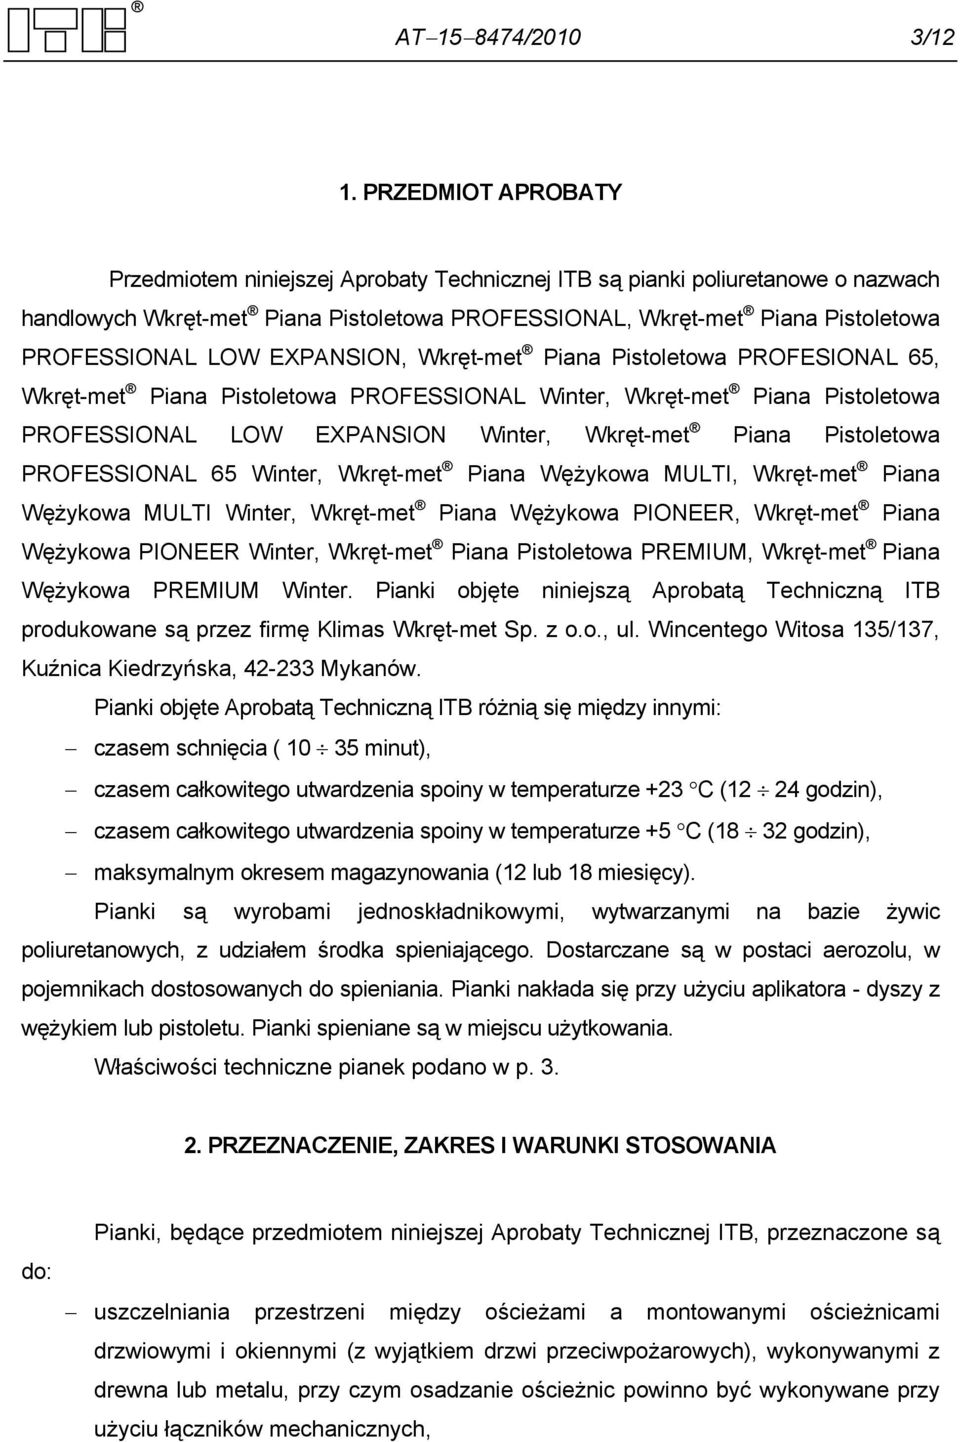 EXPANSION, Wkręt-met Piana Pistoletowa PROFESIONAL 65, Wkręt-met Piana Pistoletowa PROFESSIONAL Winter, Wkręt-met Piana Pistoletowa PROFESSIONAL LOW EXPANSION Winter, Wkręt-met Piana Pistoletowa